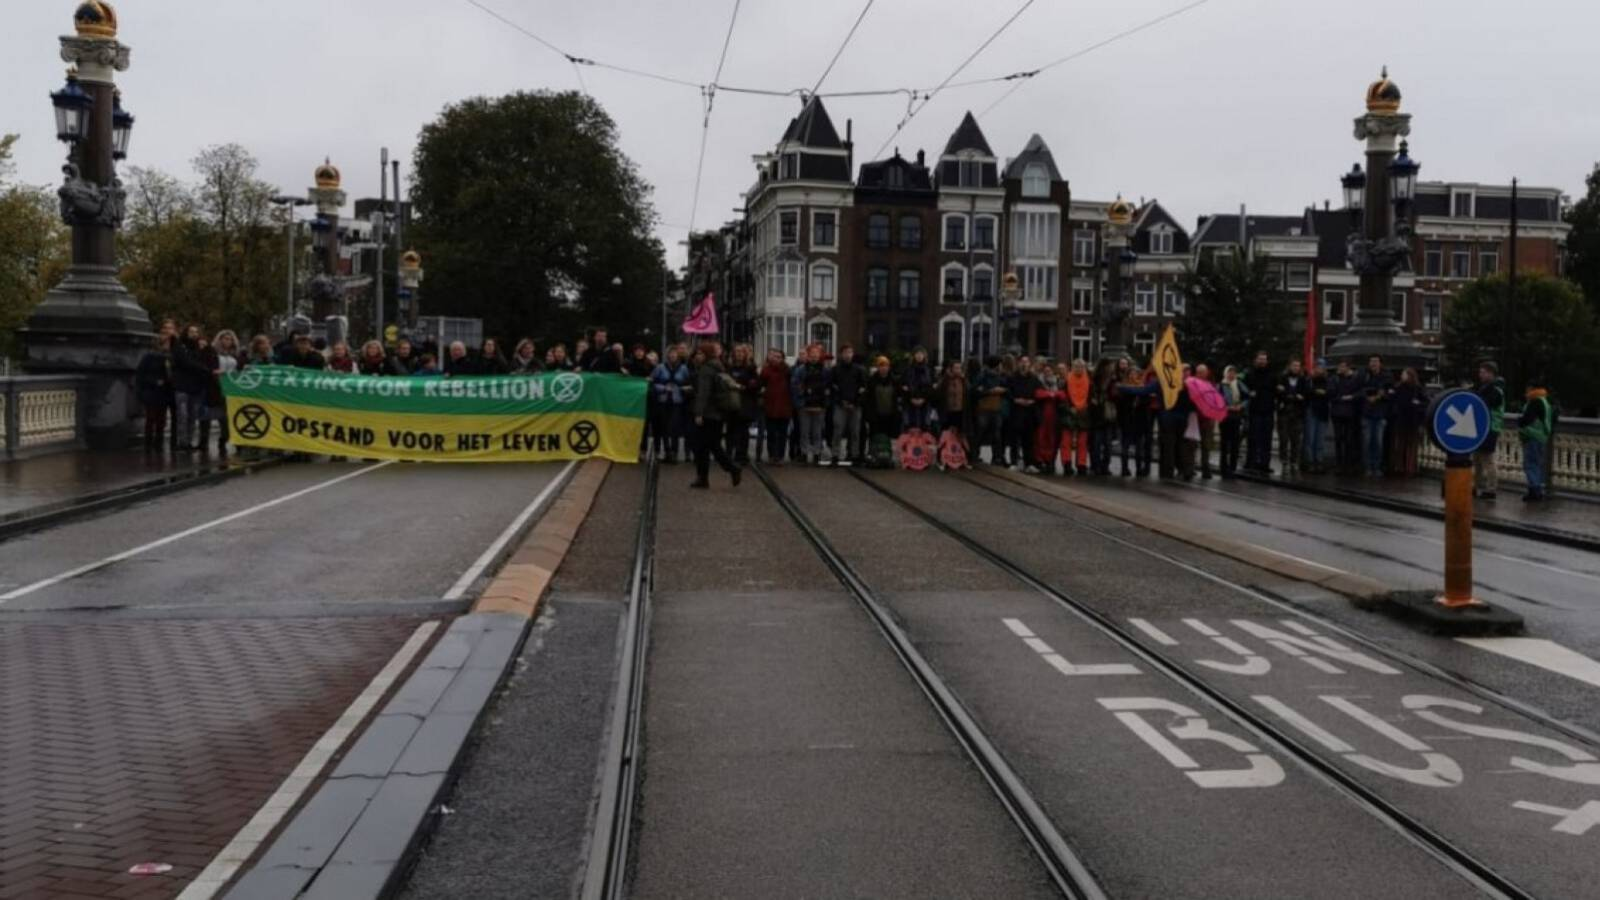 Extinction Rebellion climate protest in Amsterdam, the Netherlands